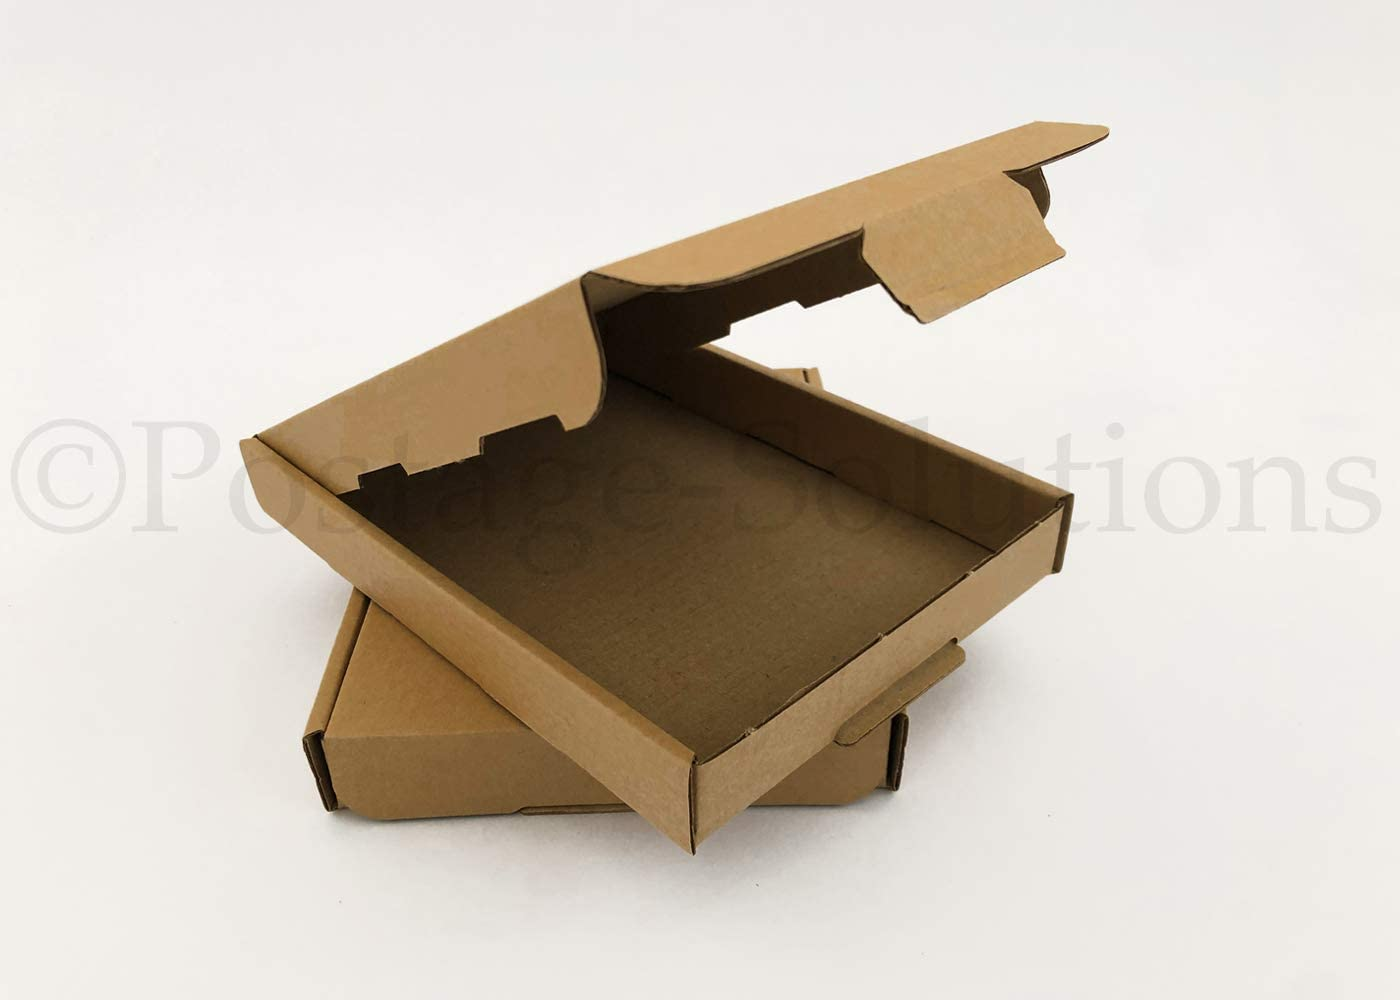 AKAR C6 A6 Size 112 x 163 x 20 mm Large Letter PIP Boxes for Royal Mail Pack of 50